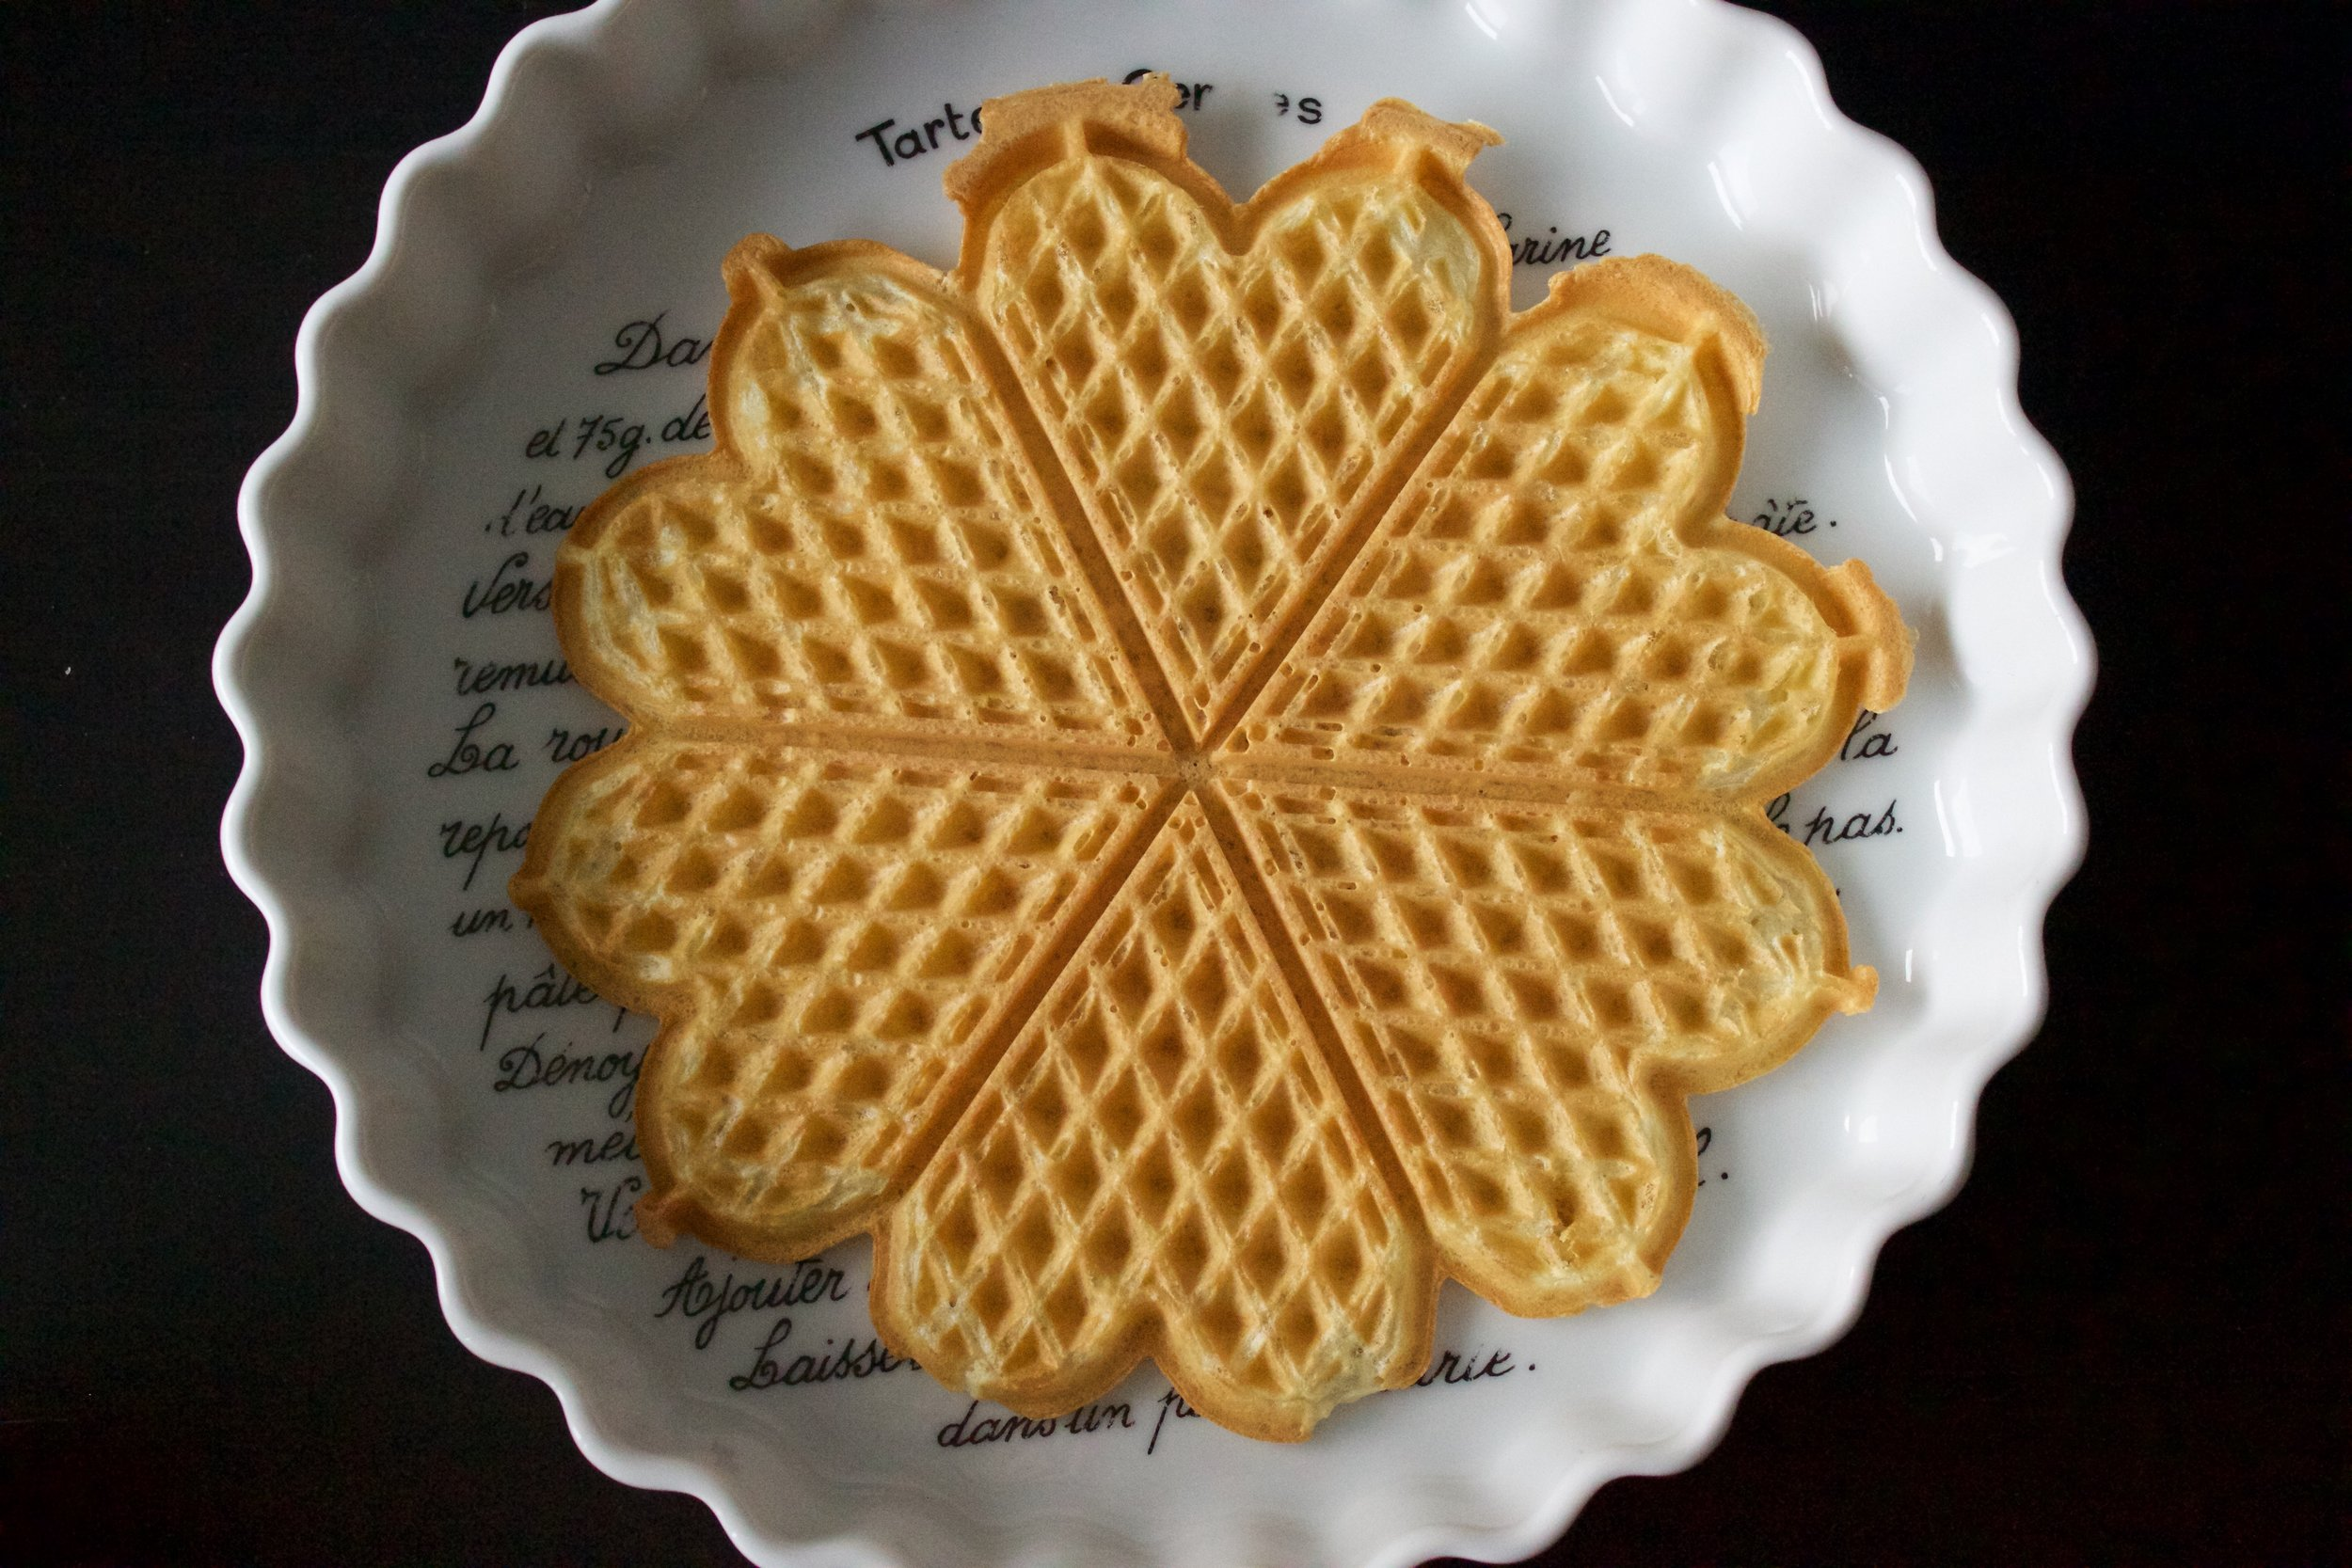 Scandinavian Heart-Shaped Waffles - the resulting waffle | In Carina's Kitchen